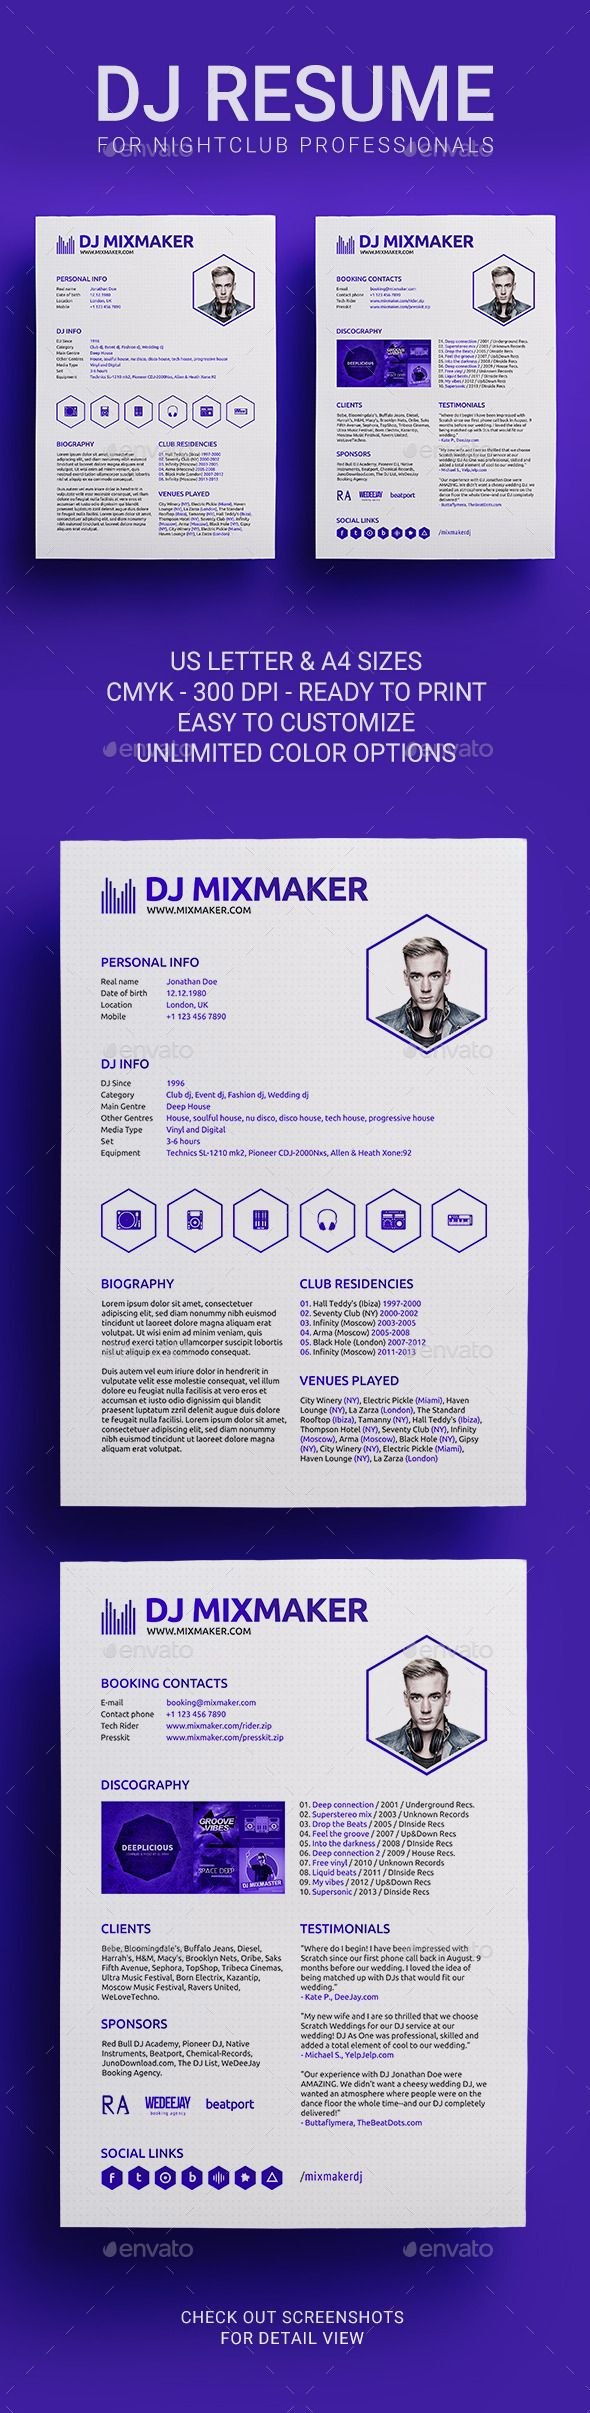 22 Best Dj Press Kit And Dj Resume Templates Images On Pinterest